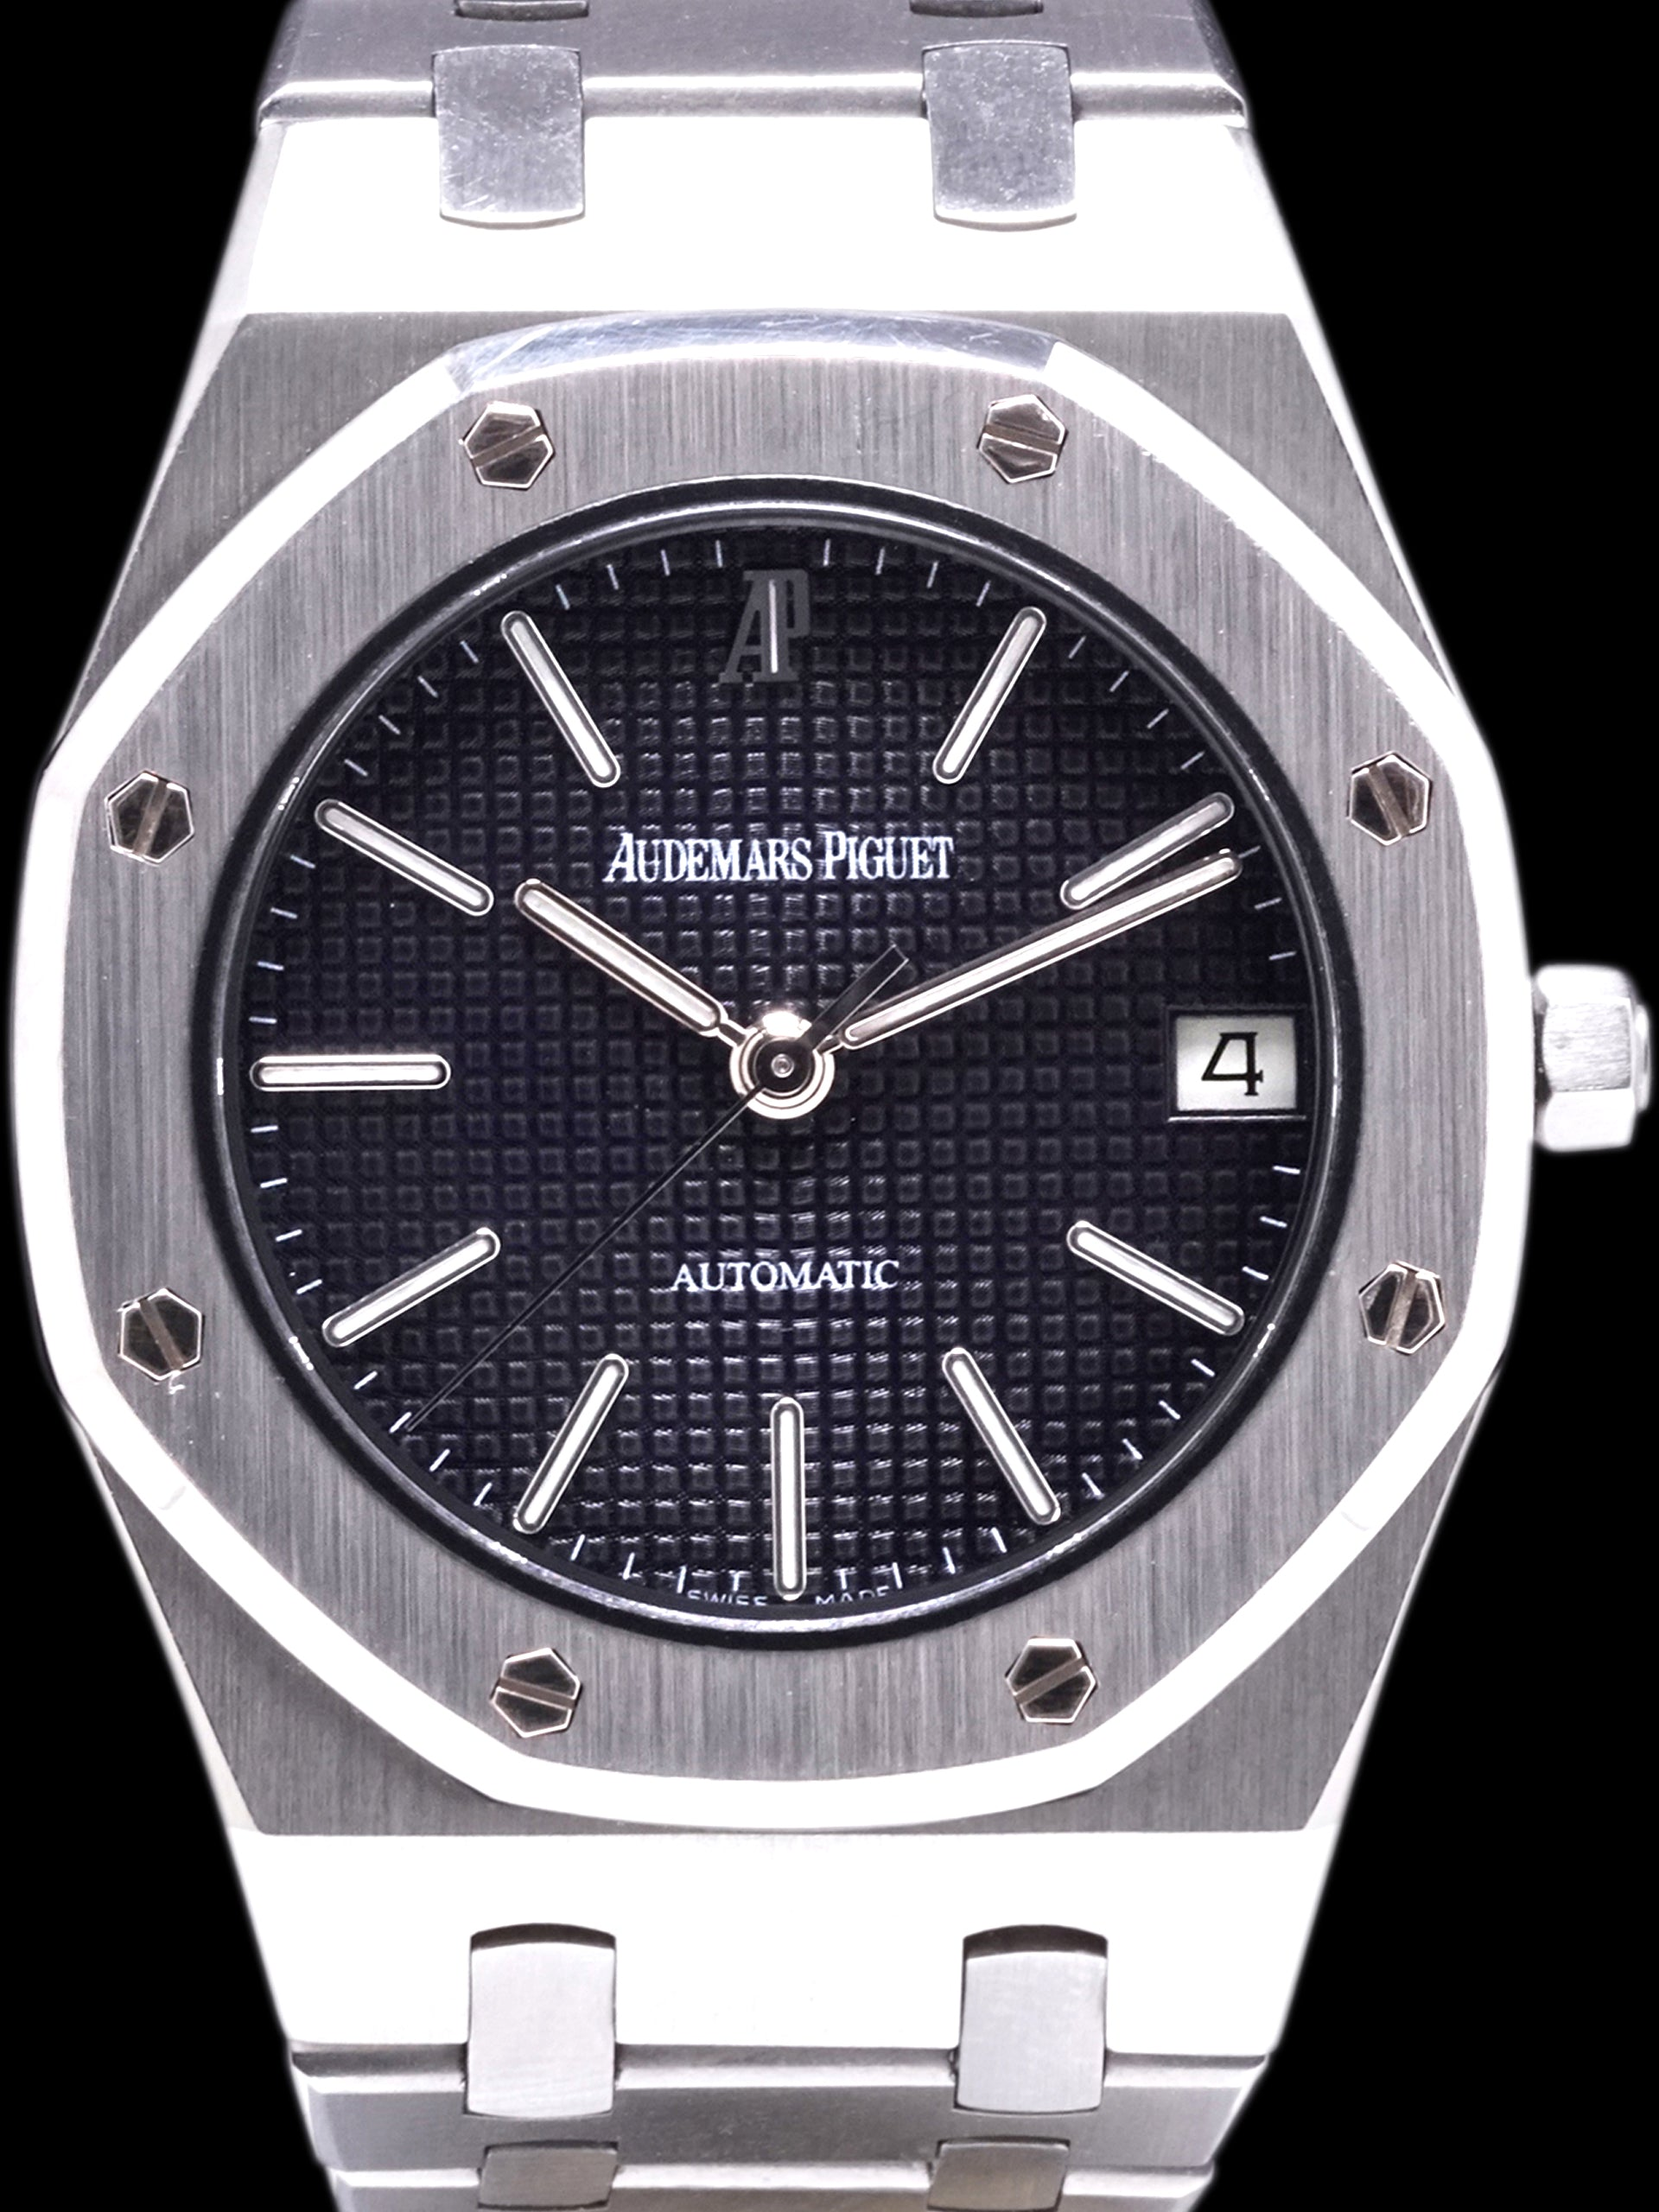 Audemars Piguet Royal (Oak Ref. 14100ST) W/ Service Paper & Card